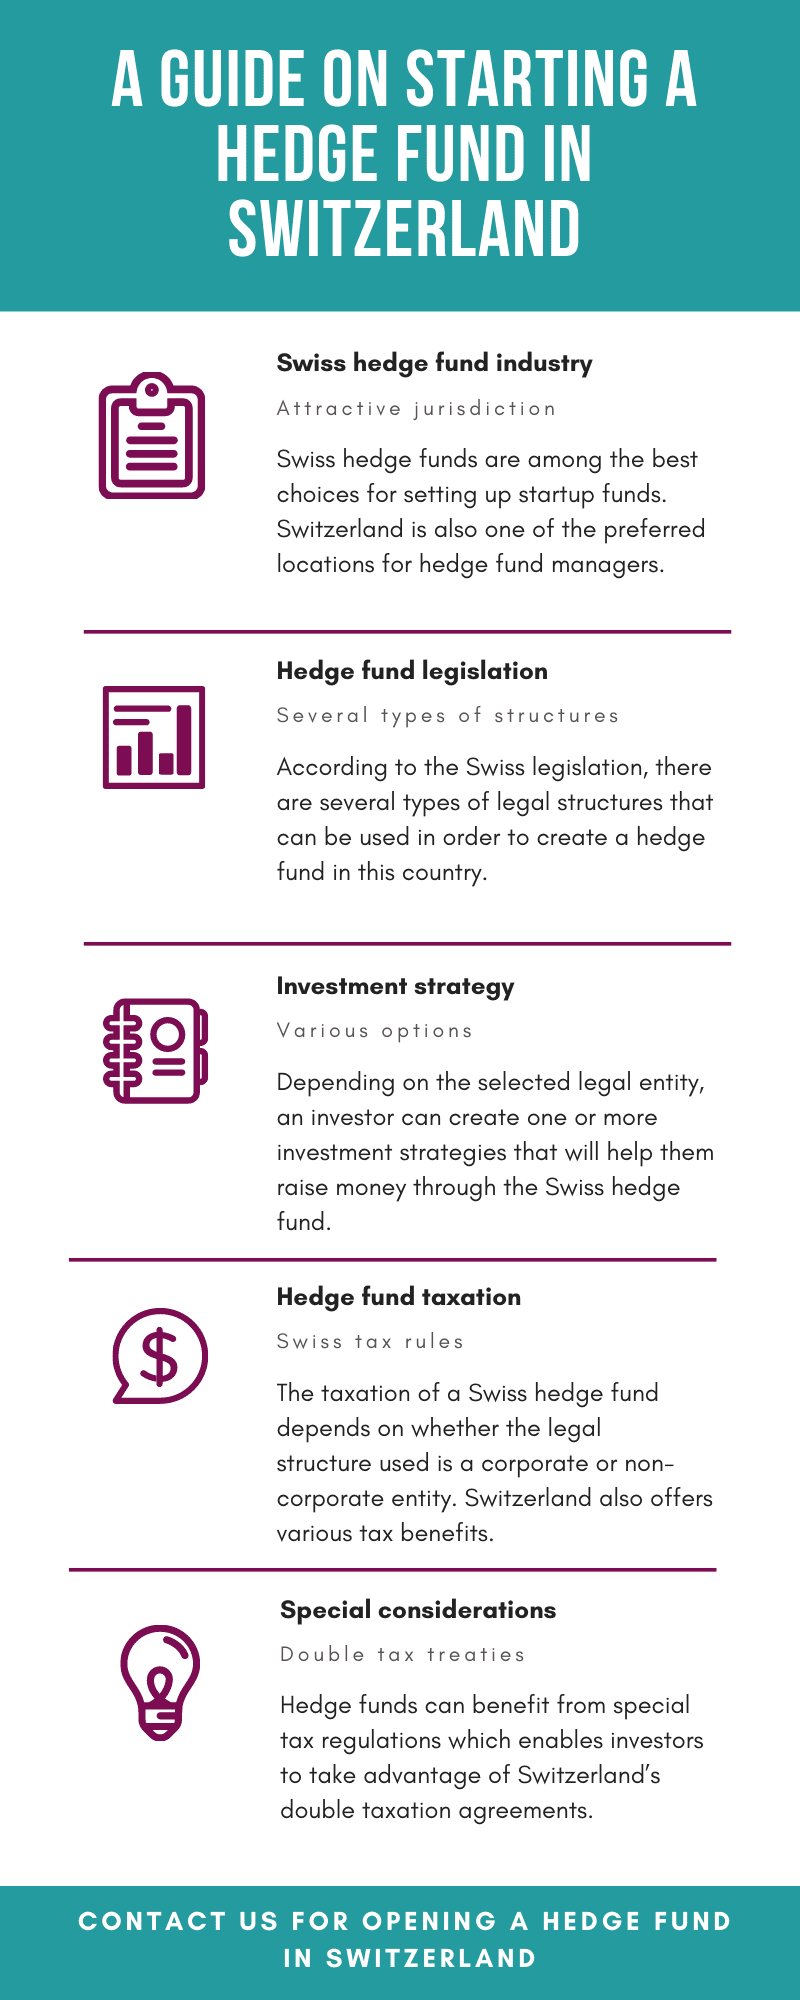 A Guide on Starting a Hedge Fund in Switzerland